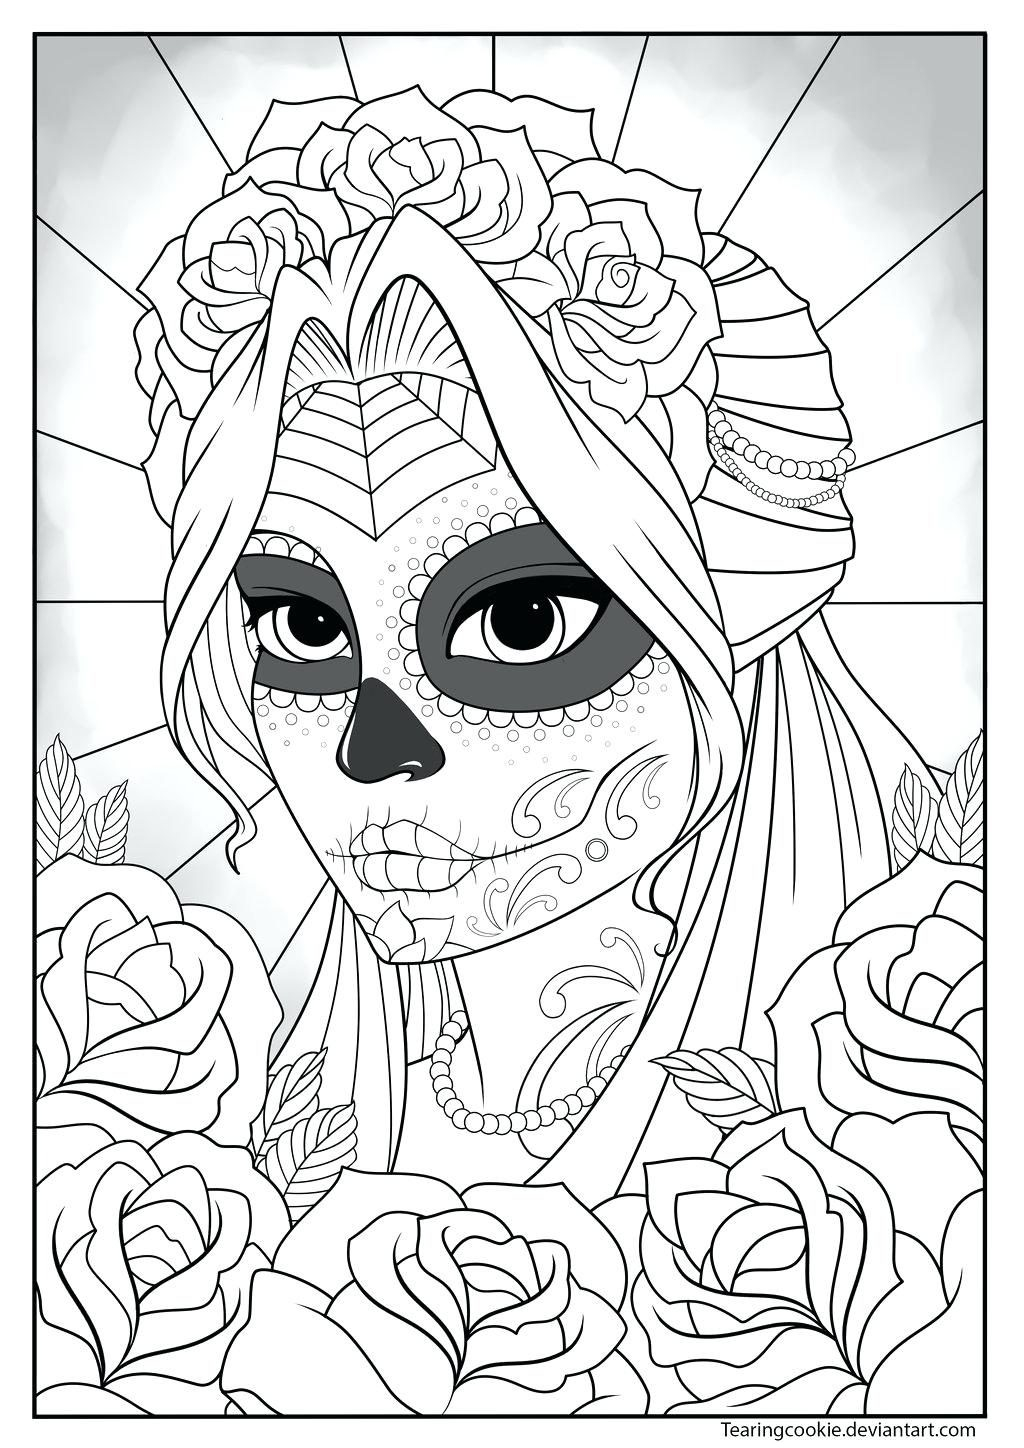 Sugar Skull Girl Coloring Pages  Collection 14r - To print for your project